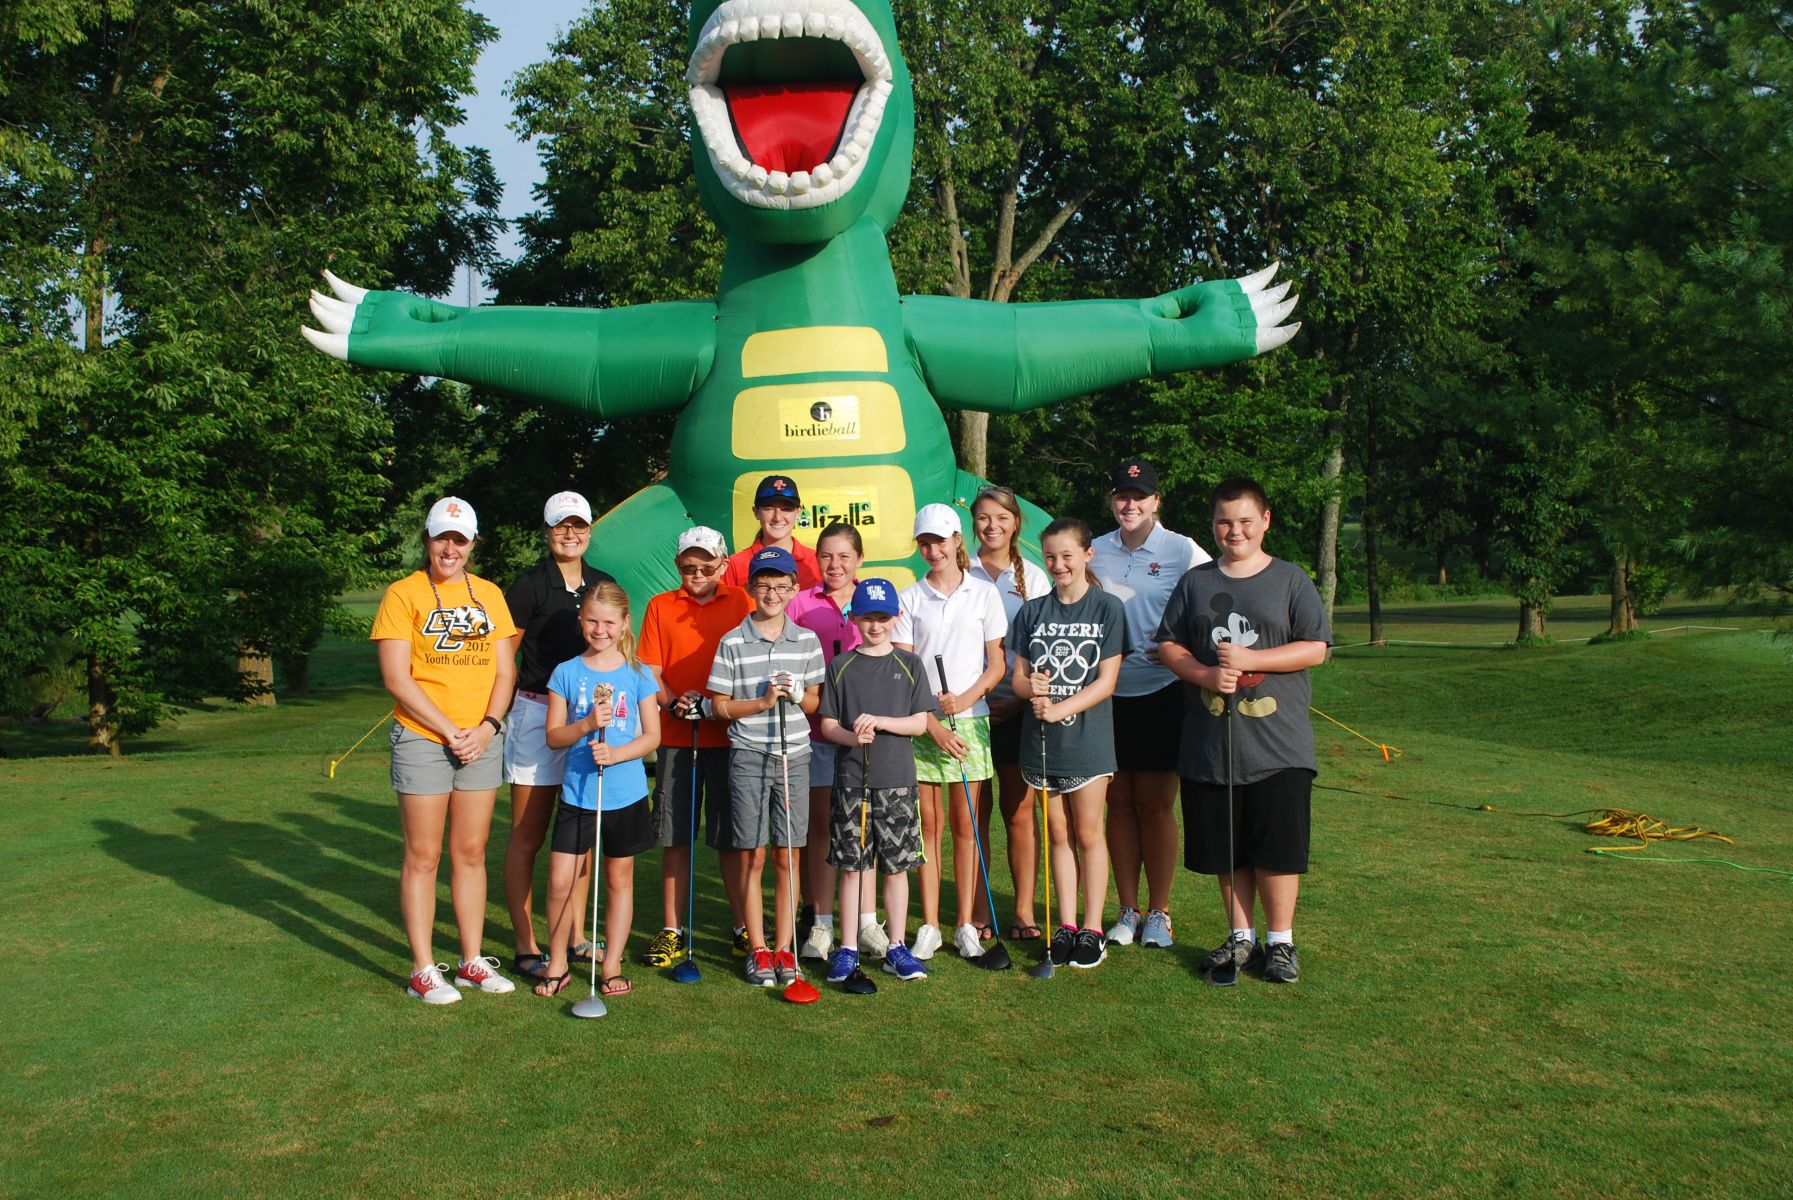 Tiger golfers had fun with campers at the recent golf camp.